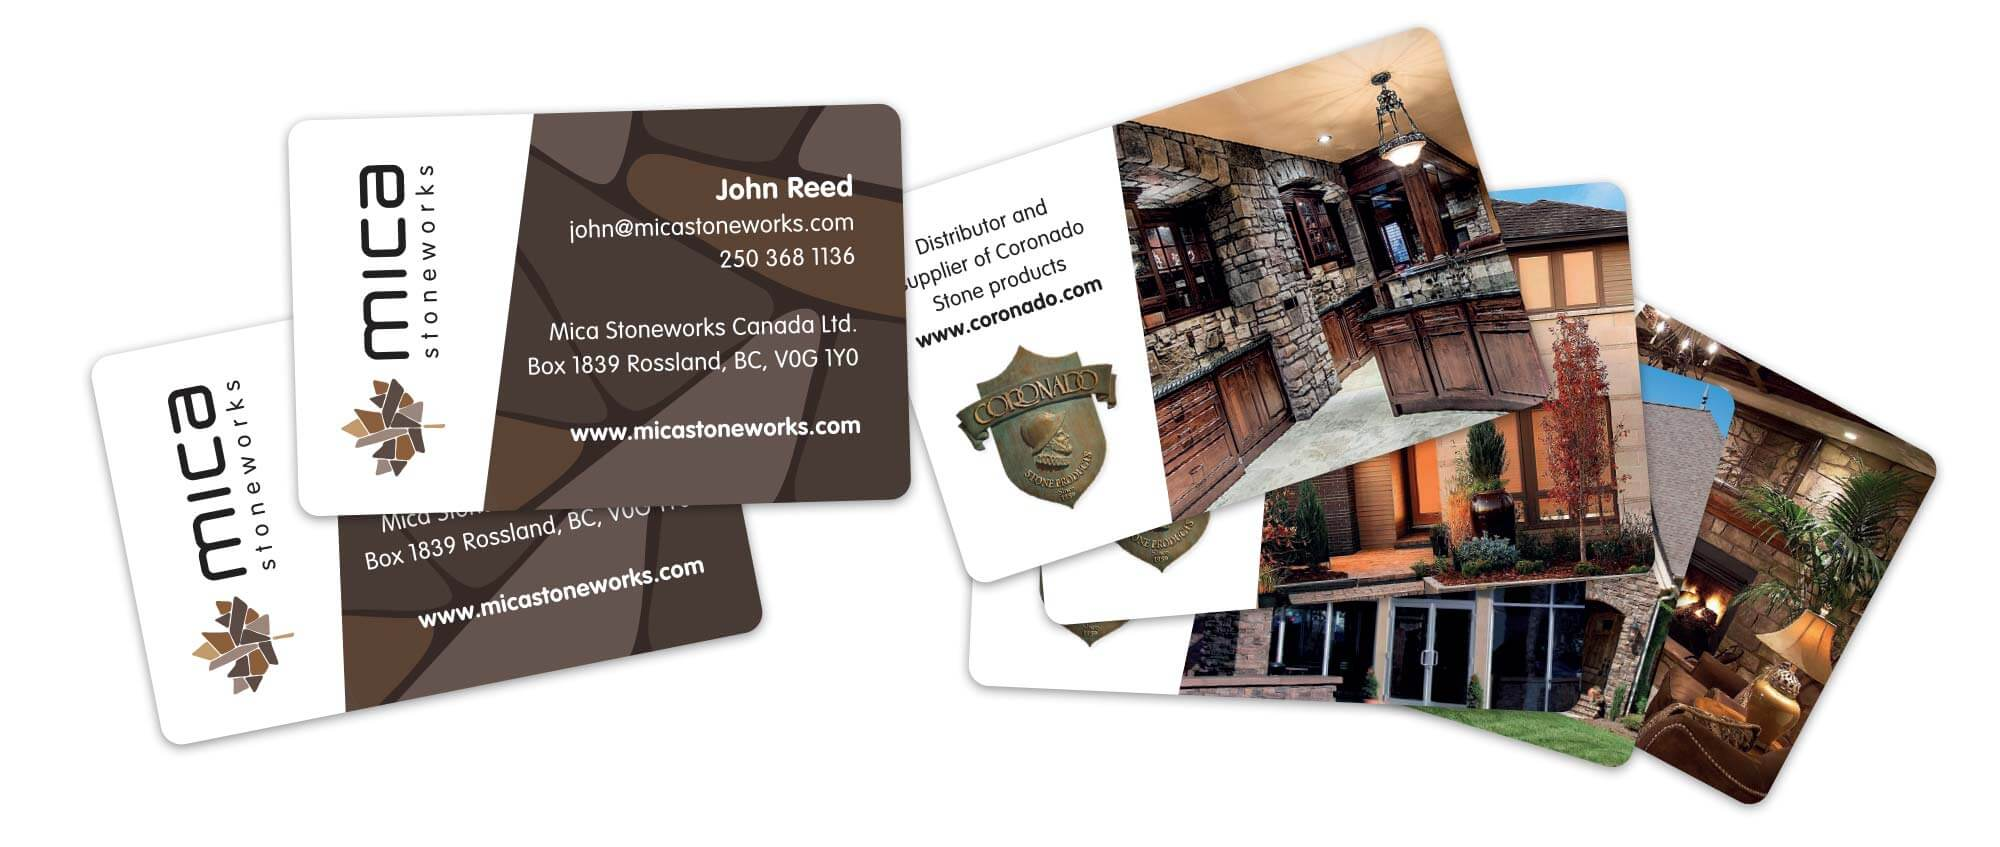 Mica Stoneworks Business Cards